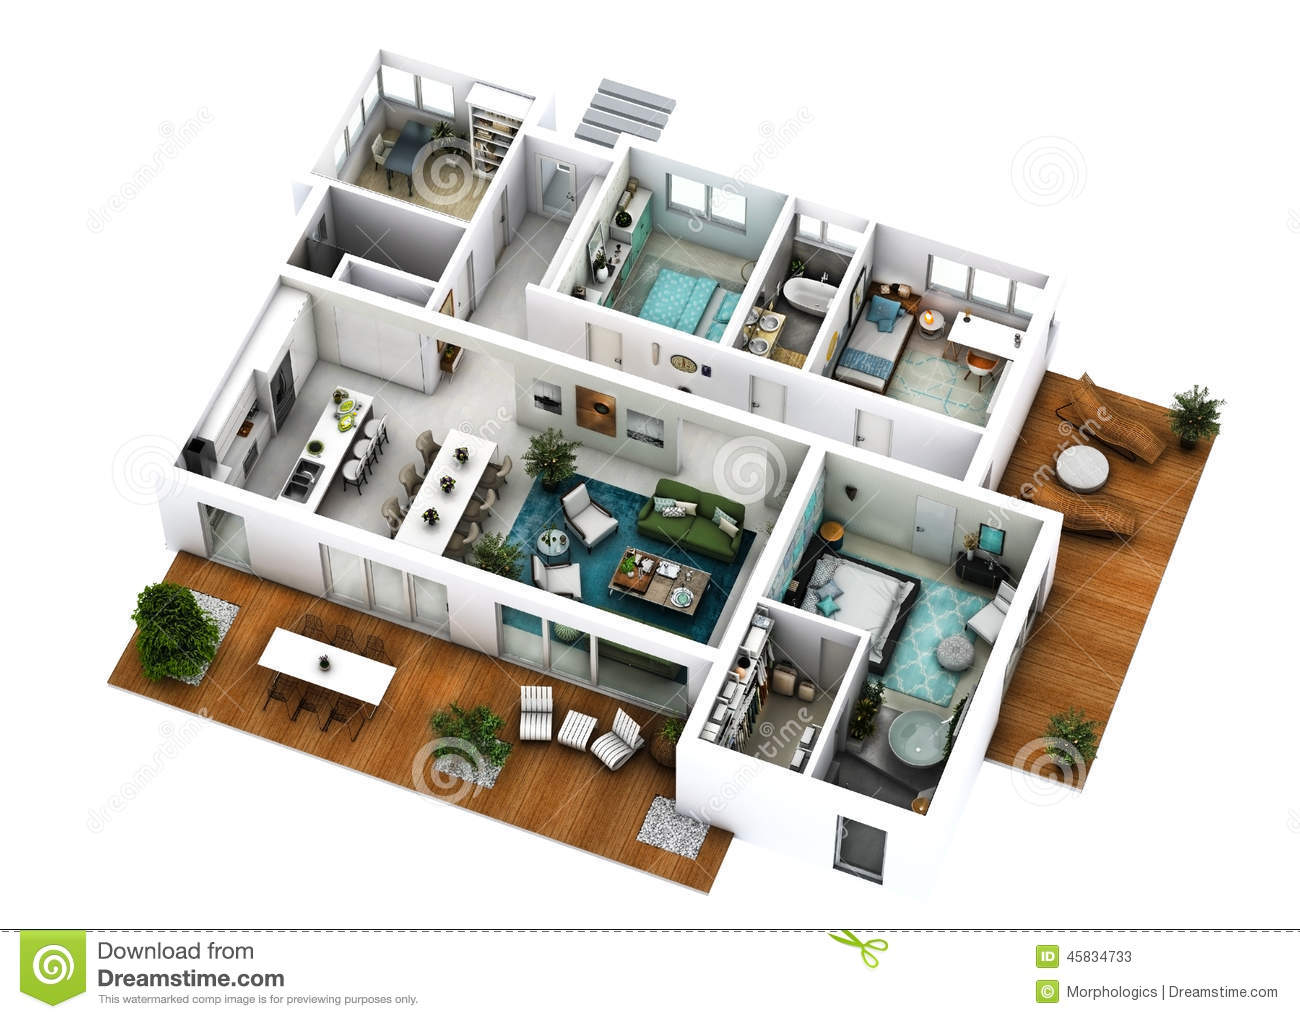 Plan interieur maison moderne 3d plan de ltage 3d photo stock plan d une maison